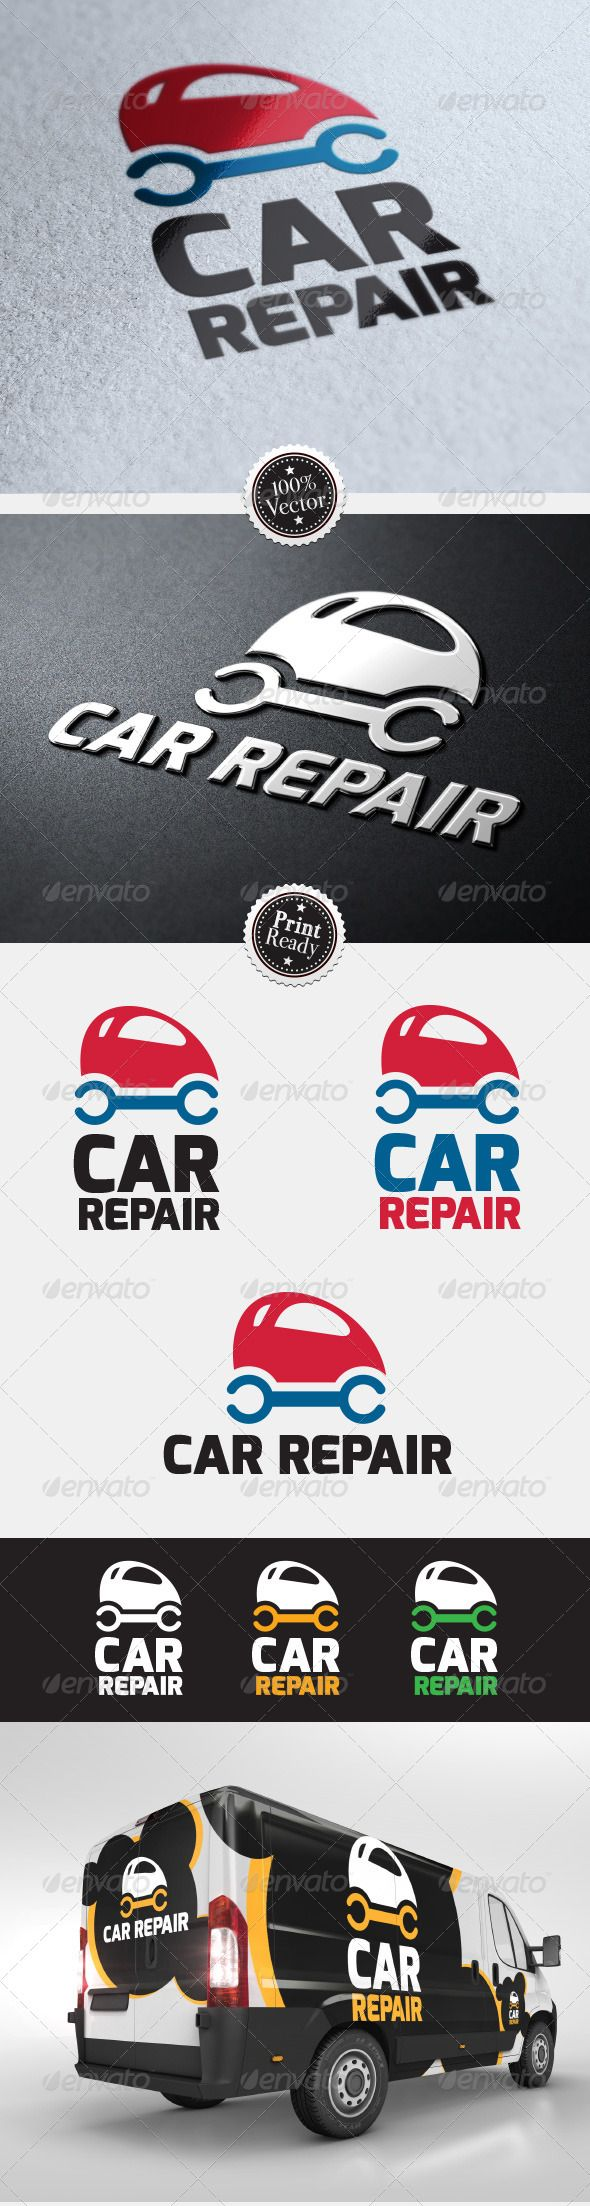 Car Repair Service logo #GraphicRiver Logo designed for car repair, car repair shops, dealerships and car service. 100% vector, two versions, unlimited color change. Font used: Exo .fontsquirrel /fonts/exo SET INCLUDES: - Two versions of the logo - 3 source files: .psd, .ai, .eps - 1 .pdf file - 1 high quality .jpg file All source files are ready to open with the Adobe Photoshop CS and Adobe Illustrator CS version or higher. Created: 6July13 GraphicsFilesIncluded: PhotoshopPSD #JPGImage…